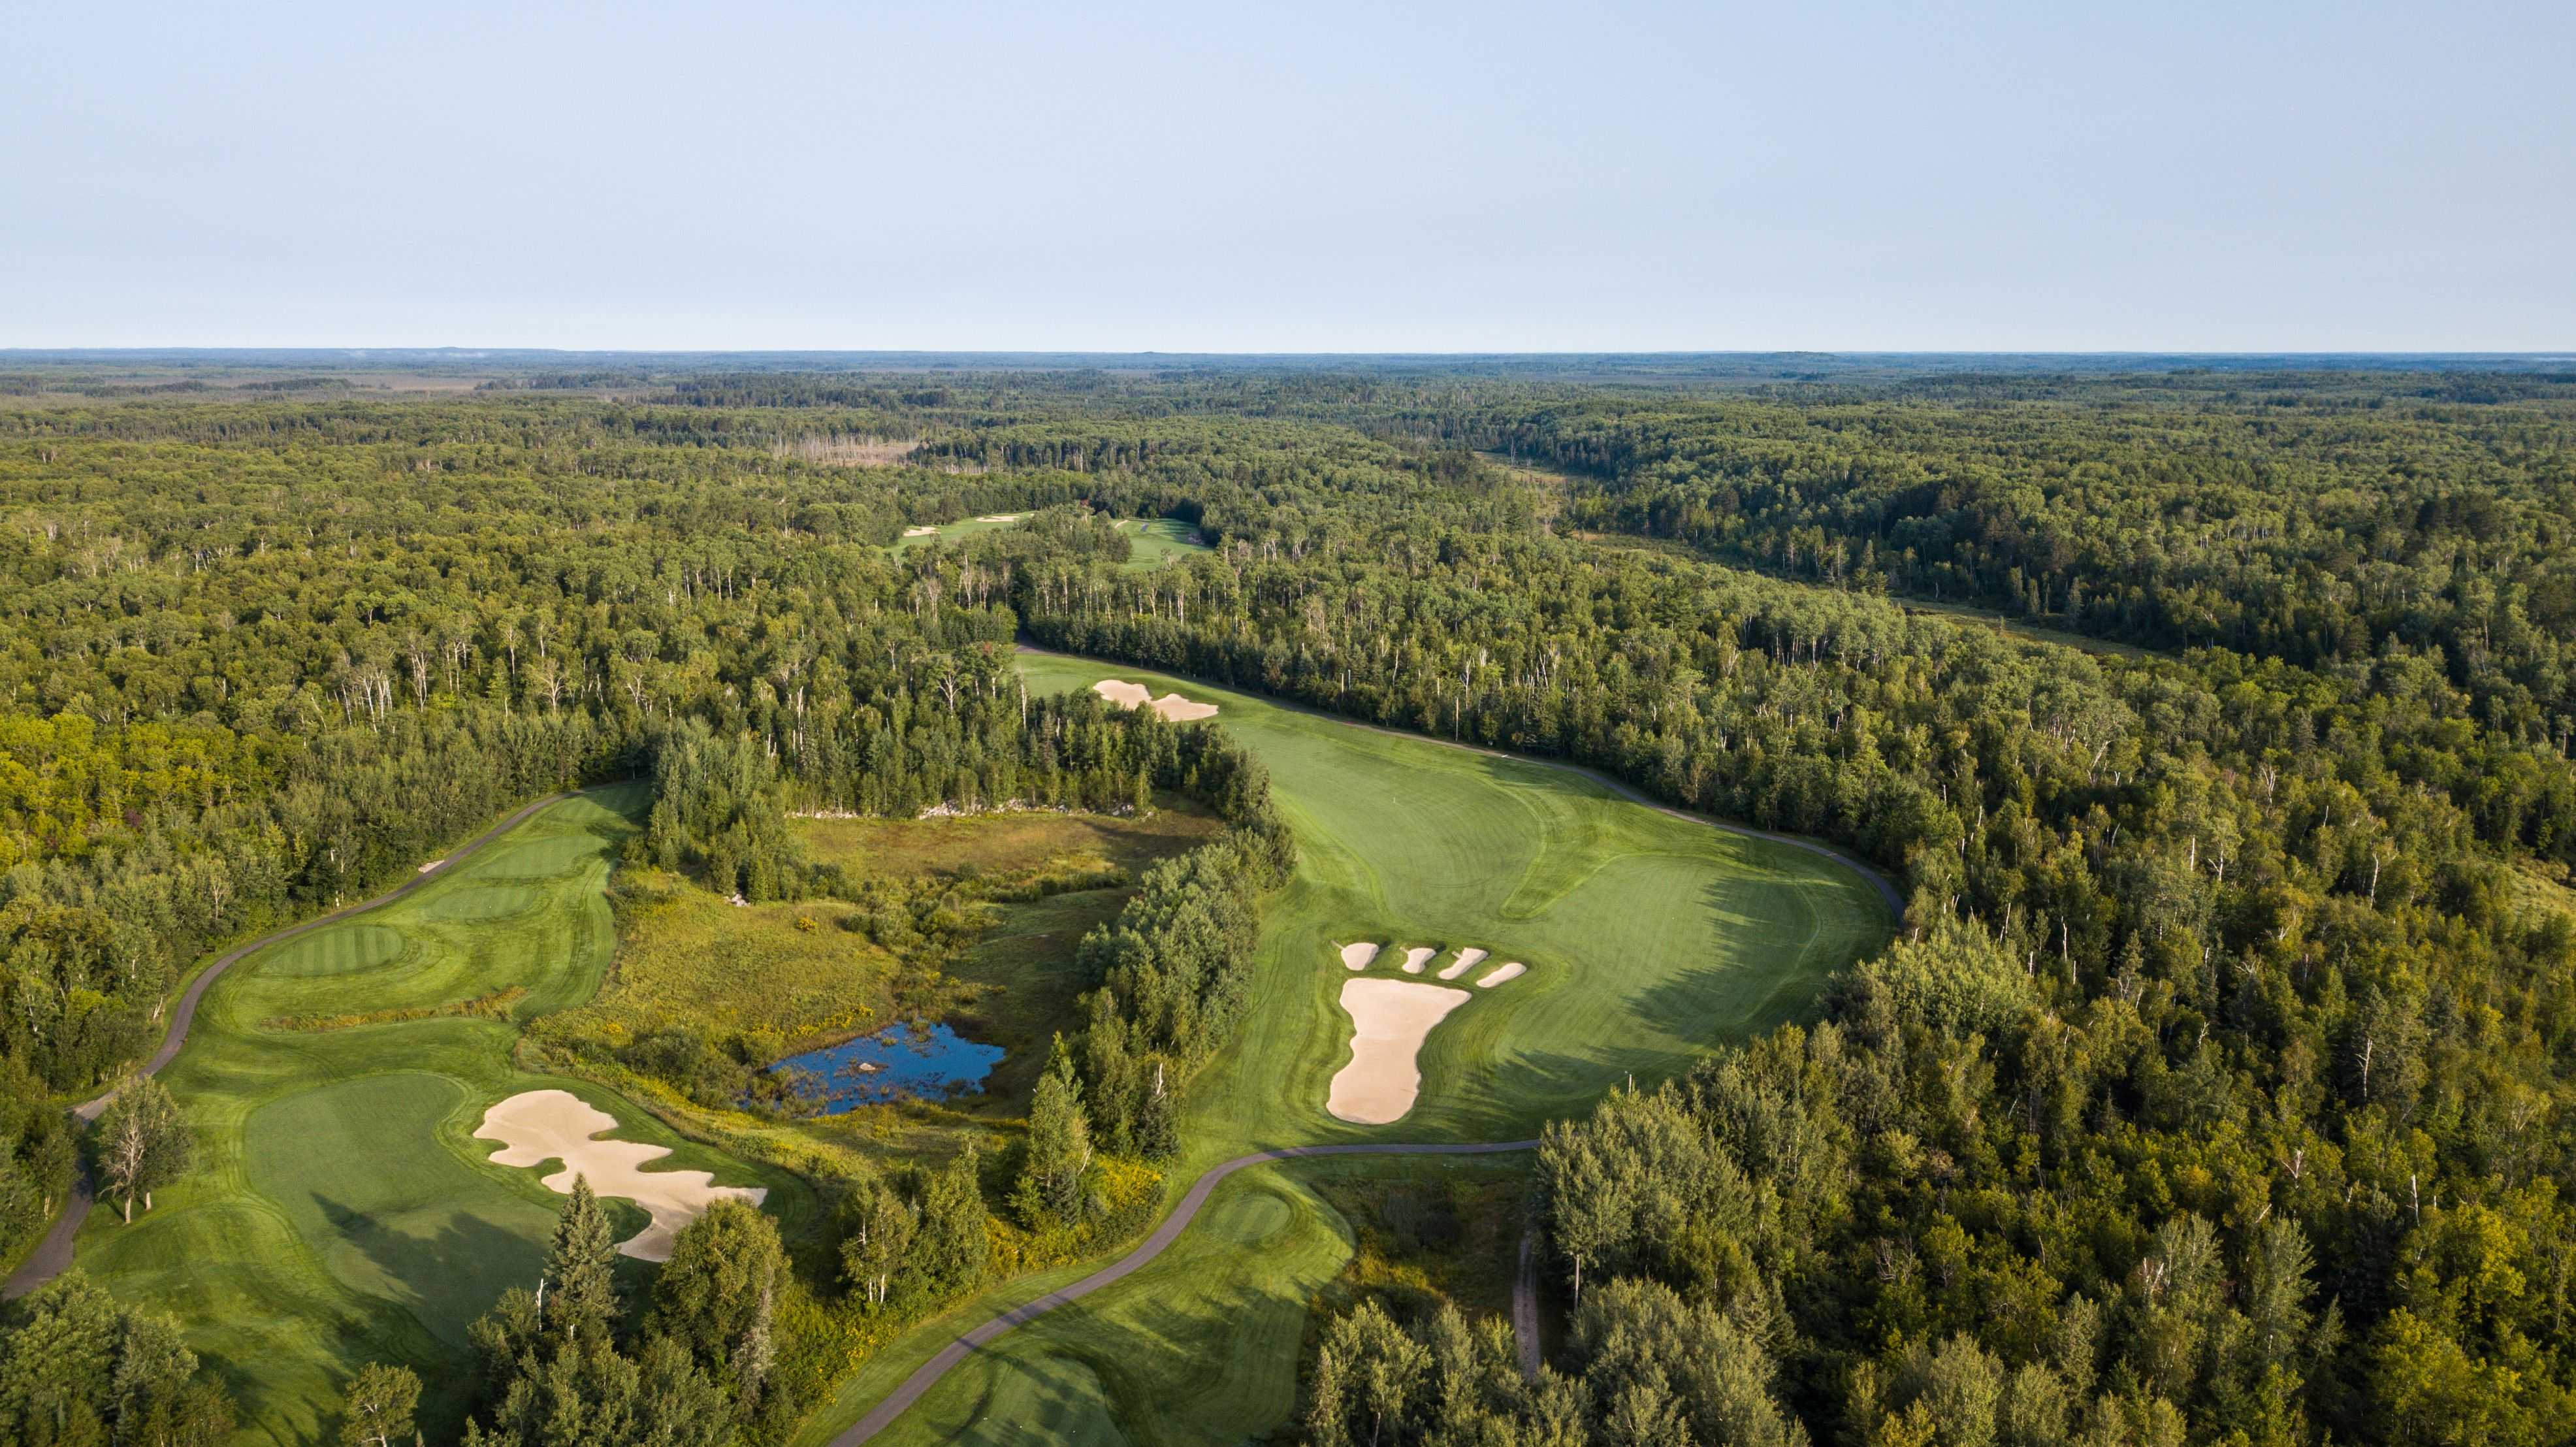 Overview Of The Golf Course At Giants Ridge Golf Courses Family Vacation Destinations Vacation Destinations